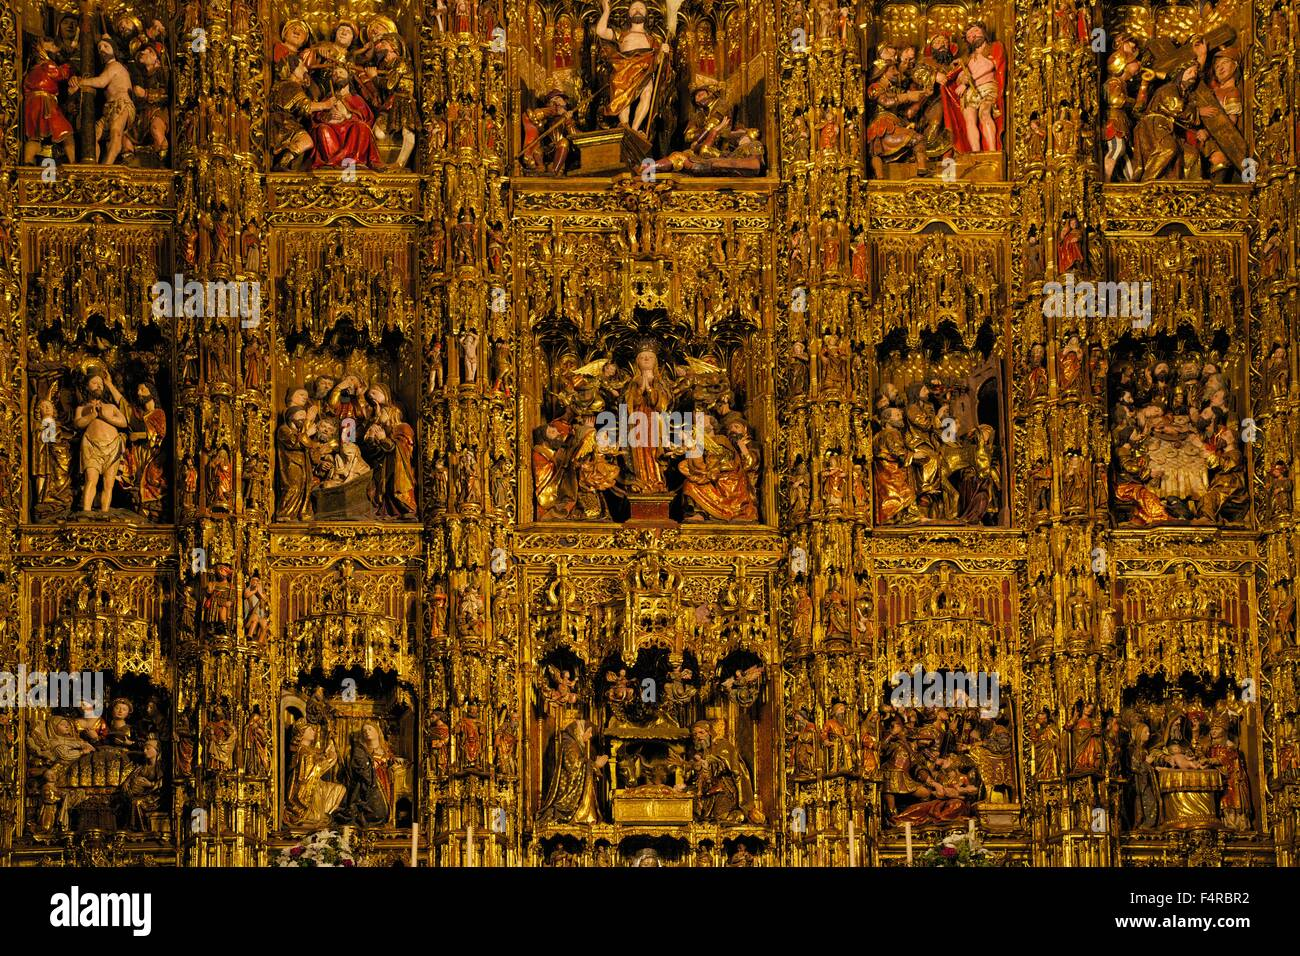 Retablo Mayor, reredos gilded relief panels, Seville Cathedral, Catedral Sevilla, Andalucia, Spain, Europe - Stock Image